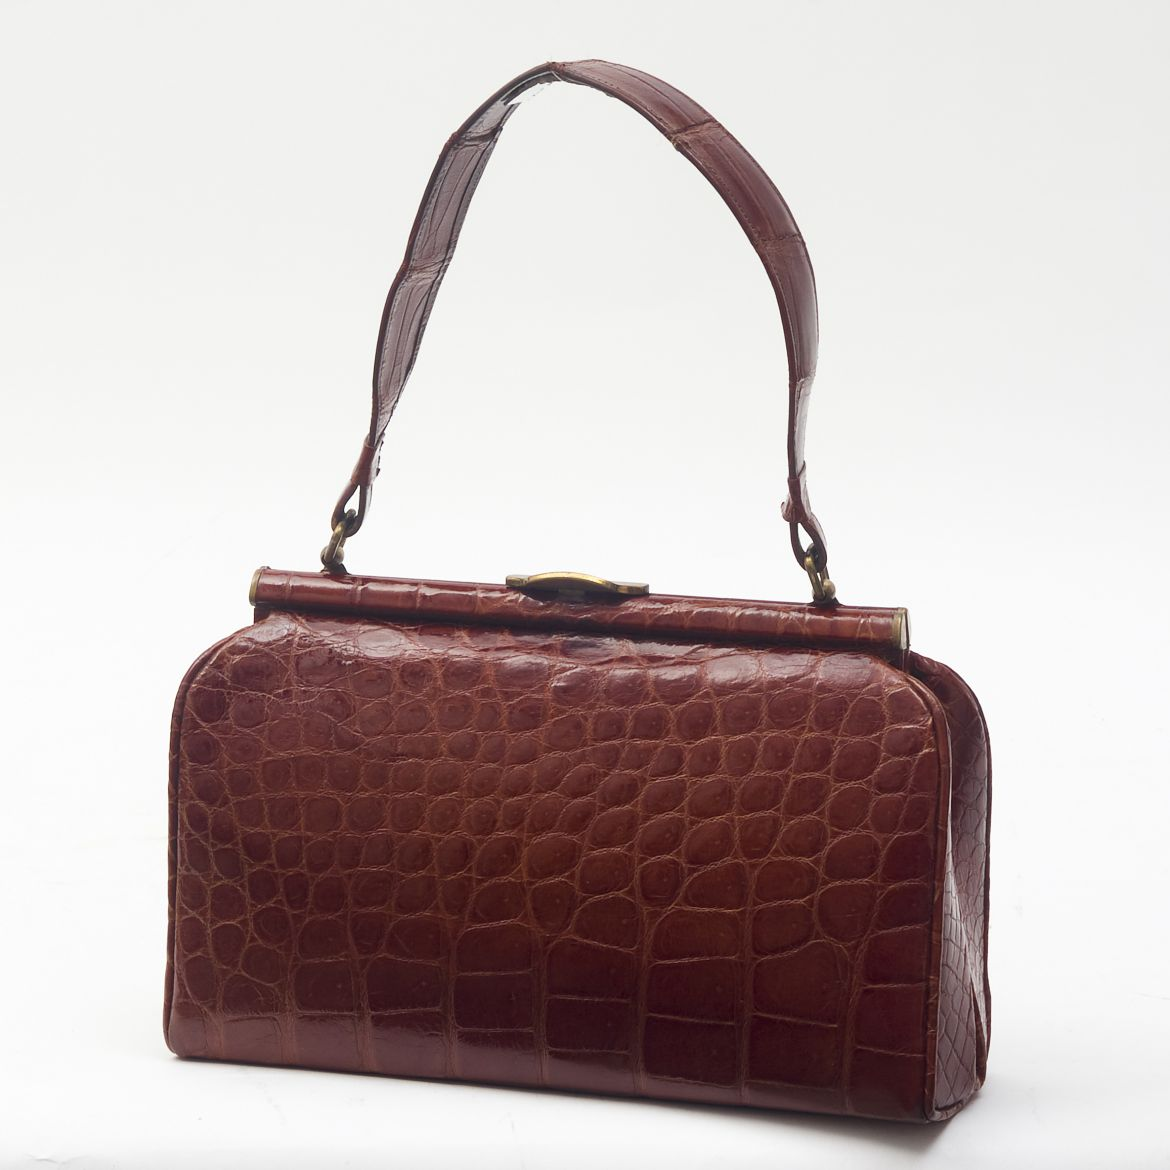 Tan Crocodile Handbag